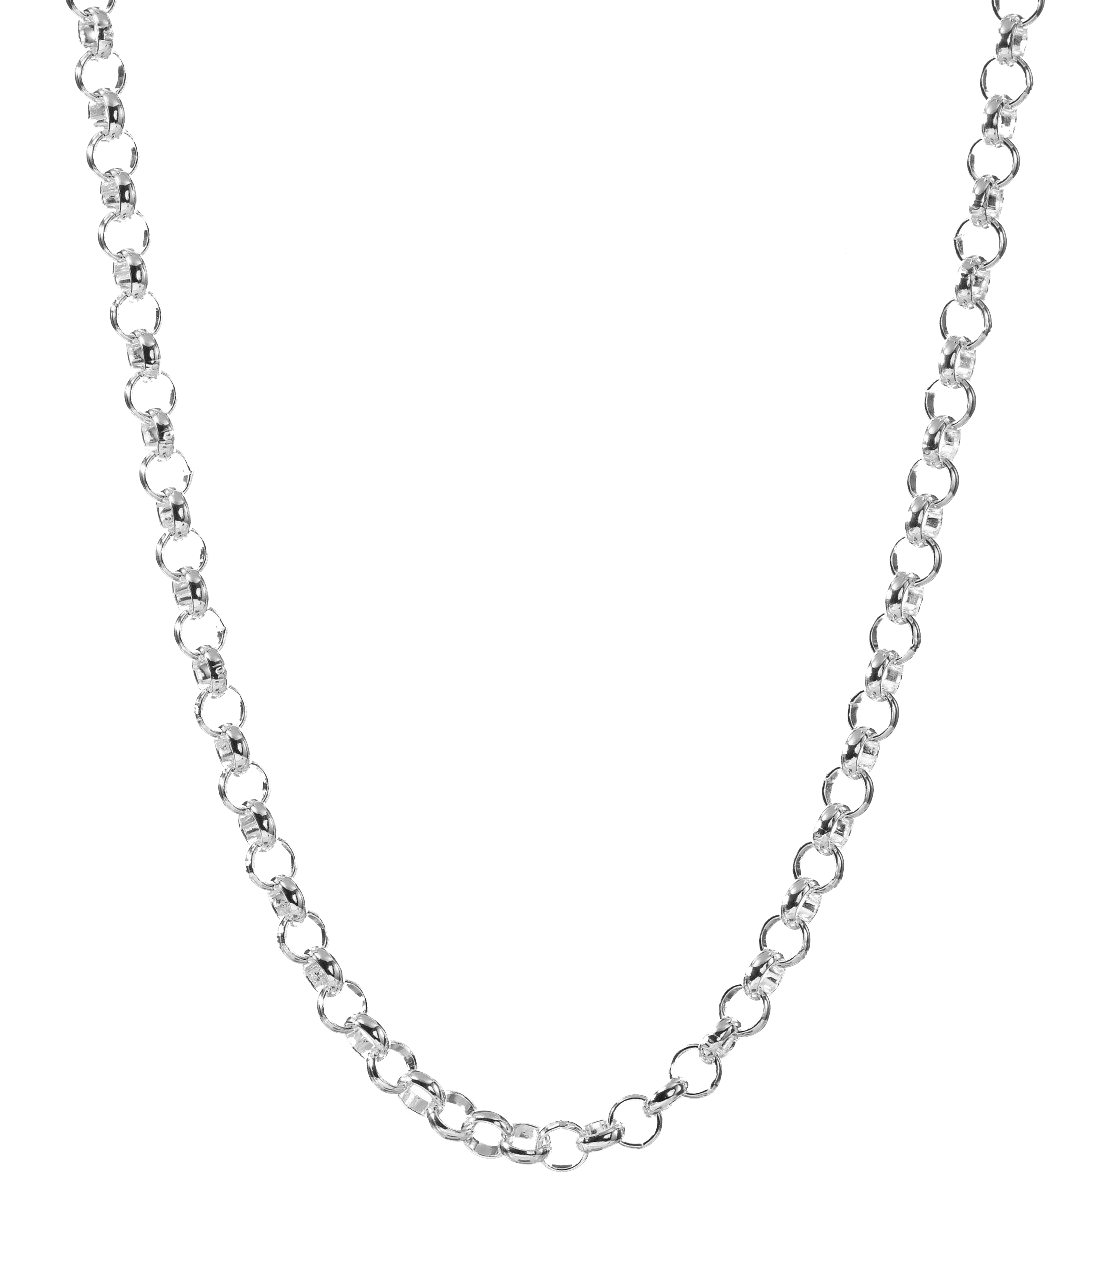 Chain PNG Images, Gold, Silver Chains Free Download.